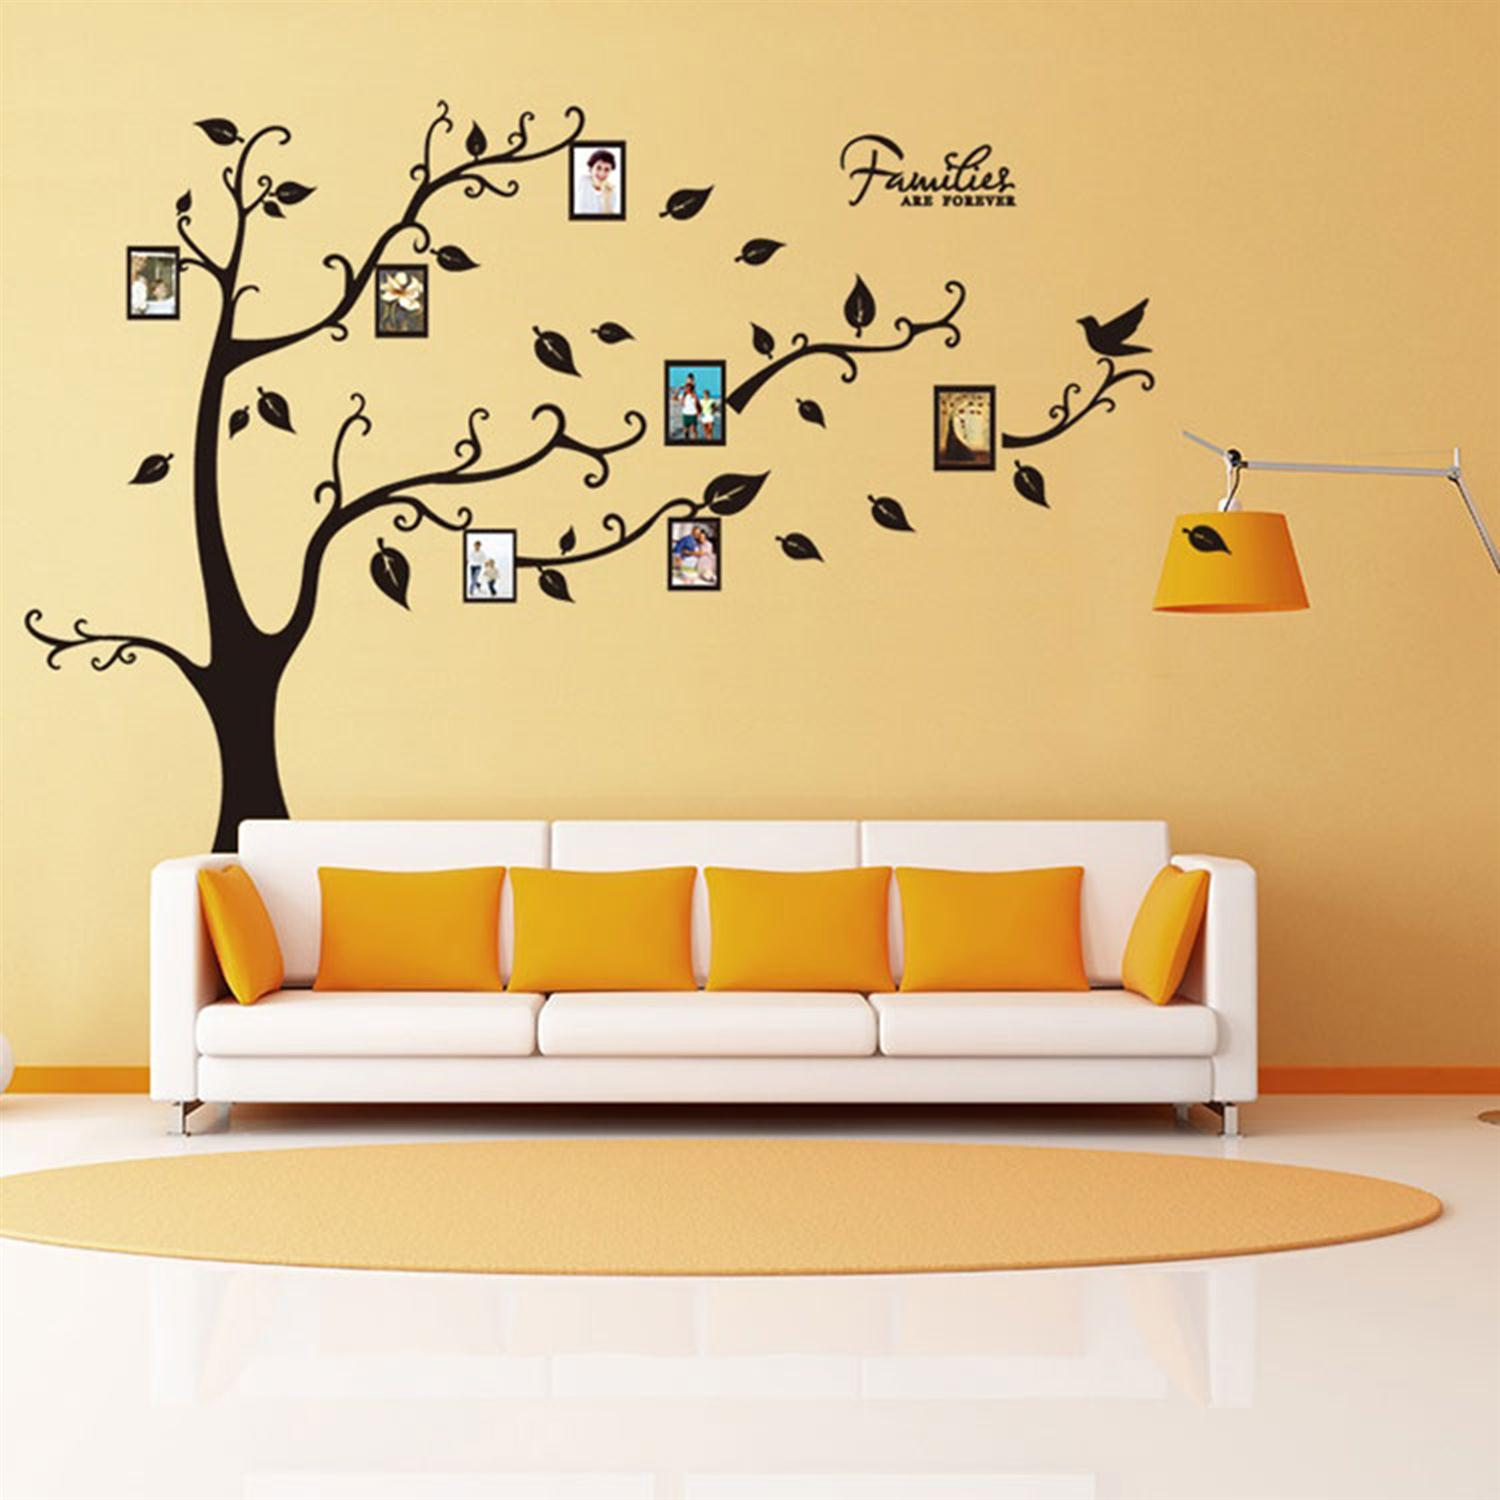 Aliexpress.com : Buy DIY photo frame Tree wall stickers home decor ...